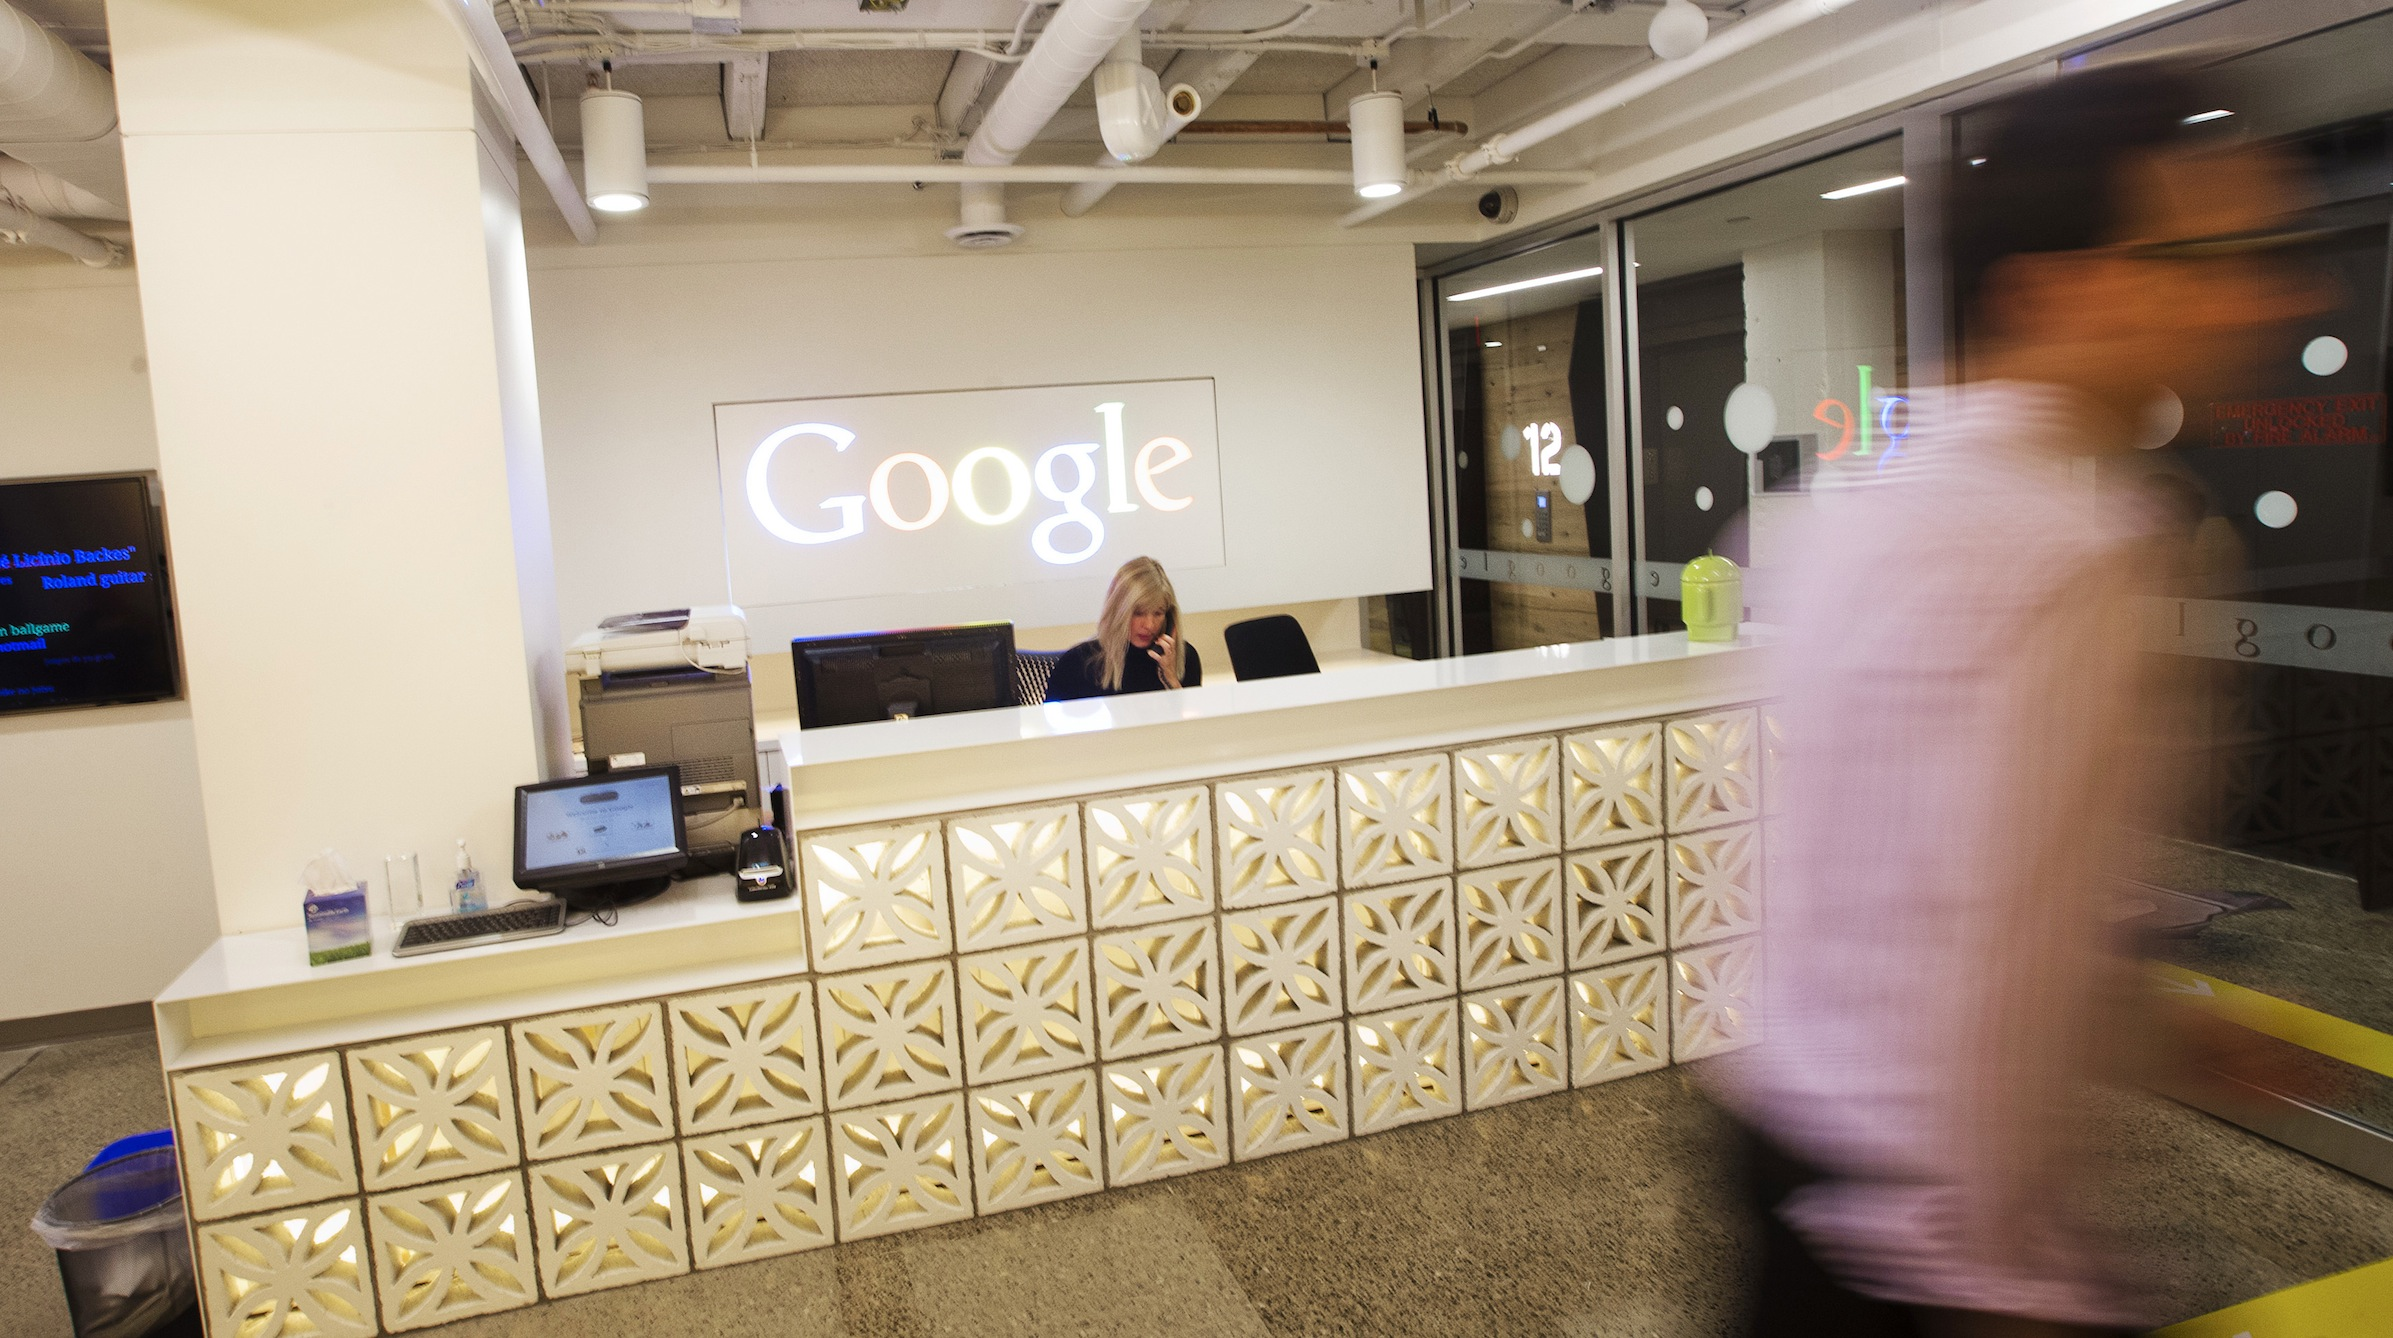 A man walks by the reception desk at the new Google office in Toronto, November 13, 2012.  REUTERS/Mark Blinch (CANADA - Tags: SCIENCE TECHNOLOGY BUSINESS) - RTR3ACWN